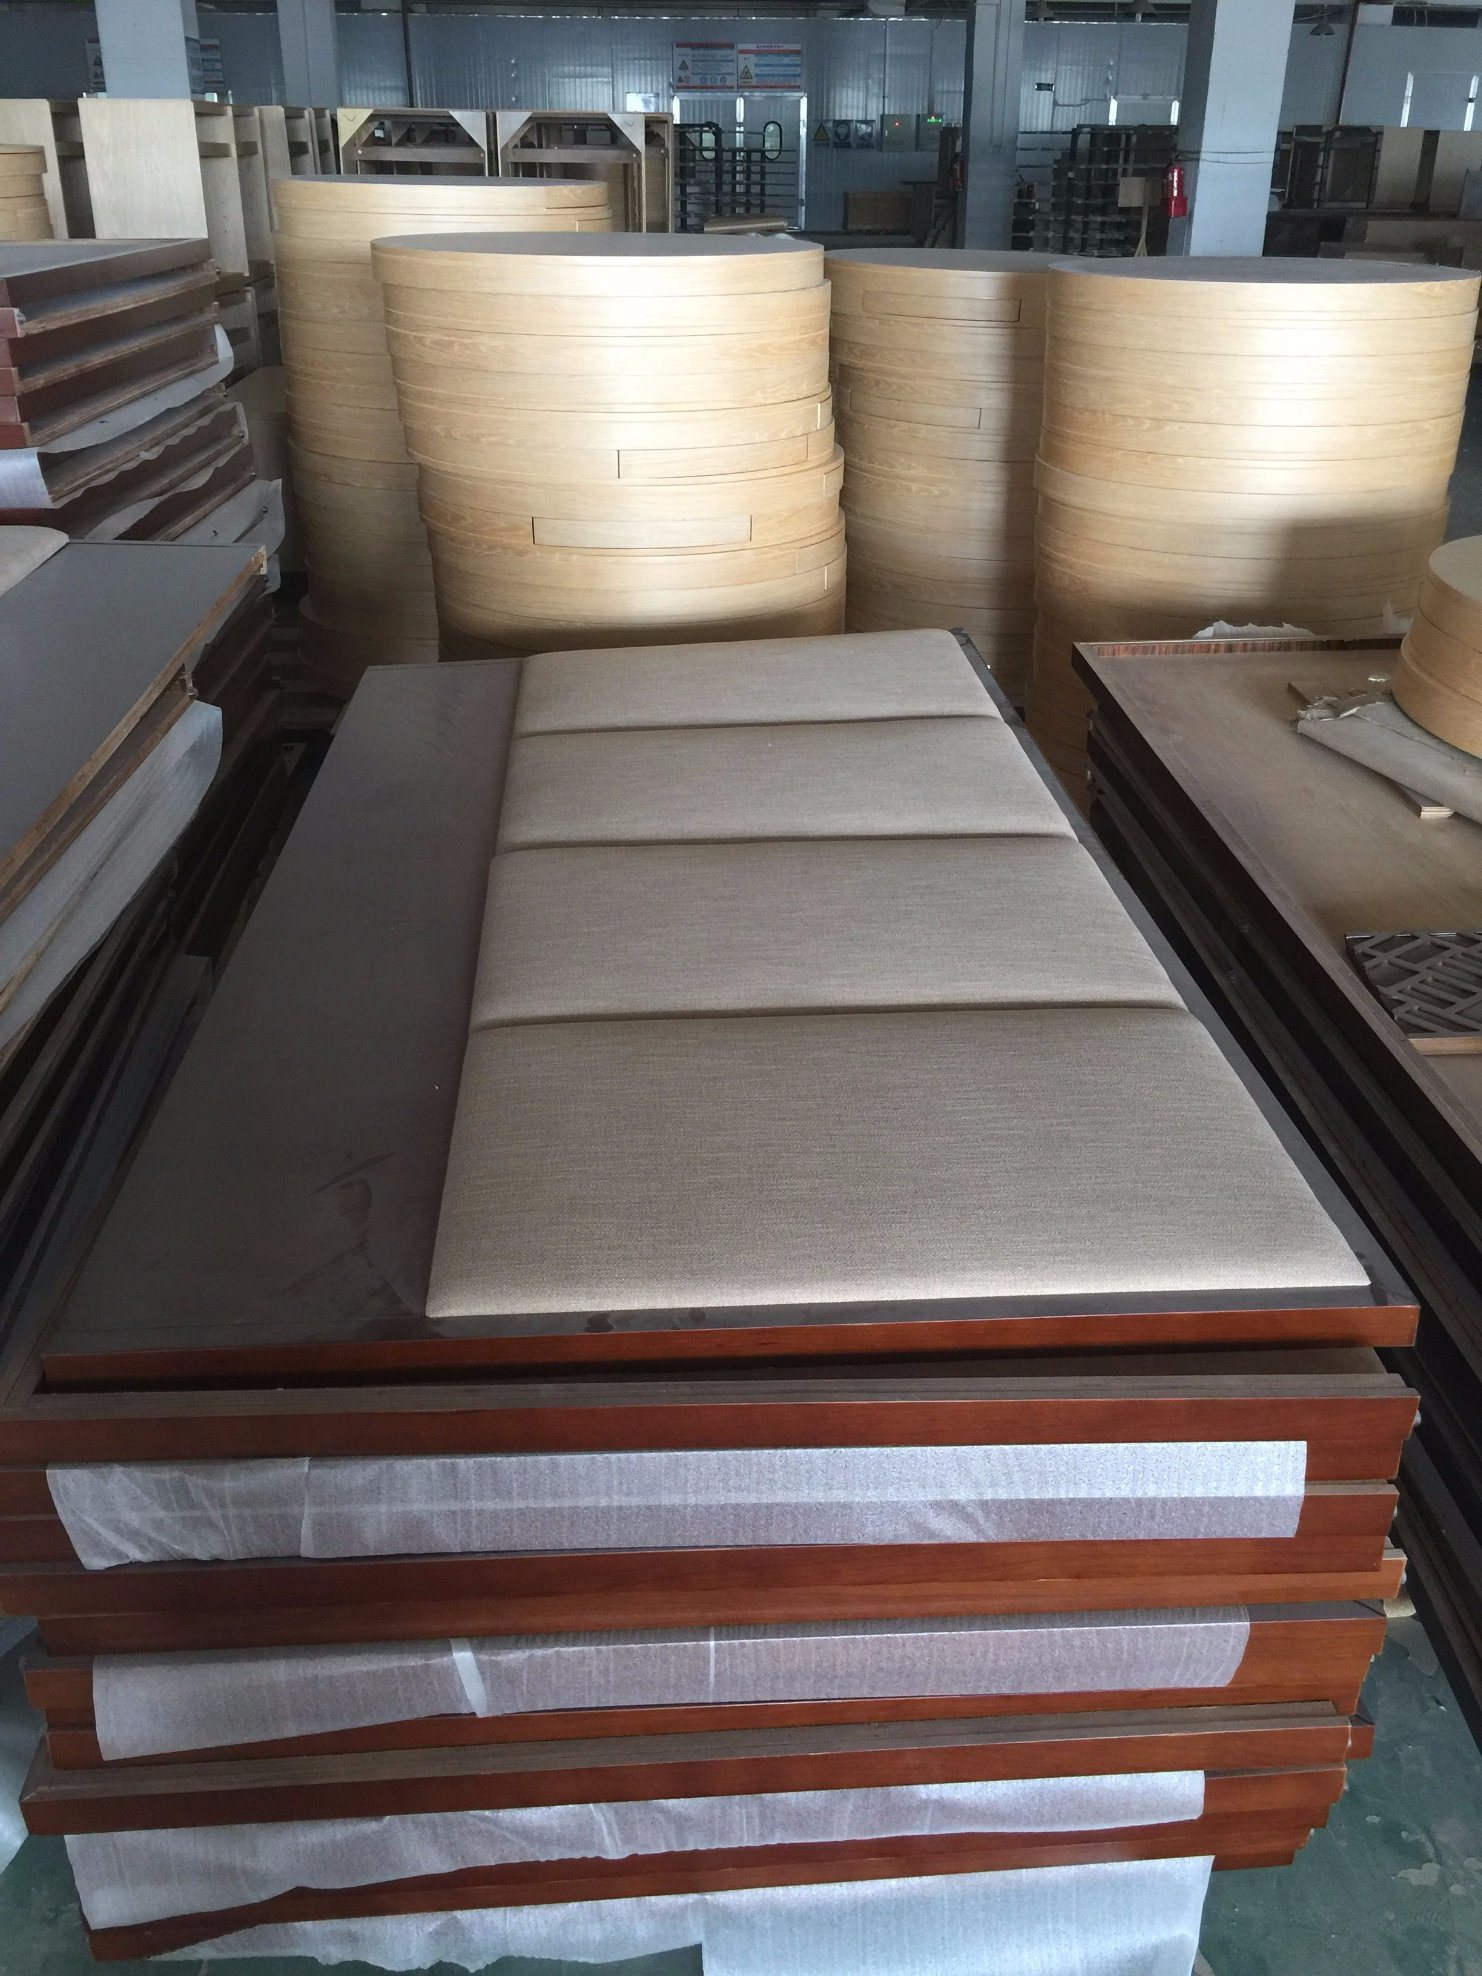 Hotel Bedroom Furniture/Luxury Double Bedroom Furniture/Standard Hotel Double Bedroom Suite/Double Hospitality Guest Room Furniture (CHN-006)